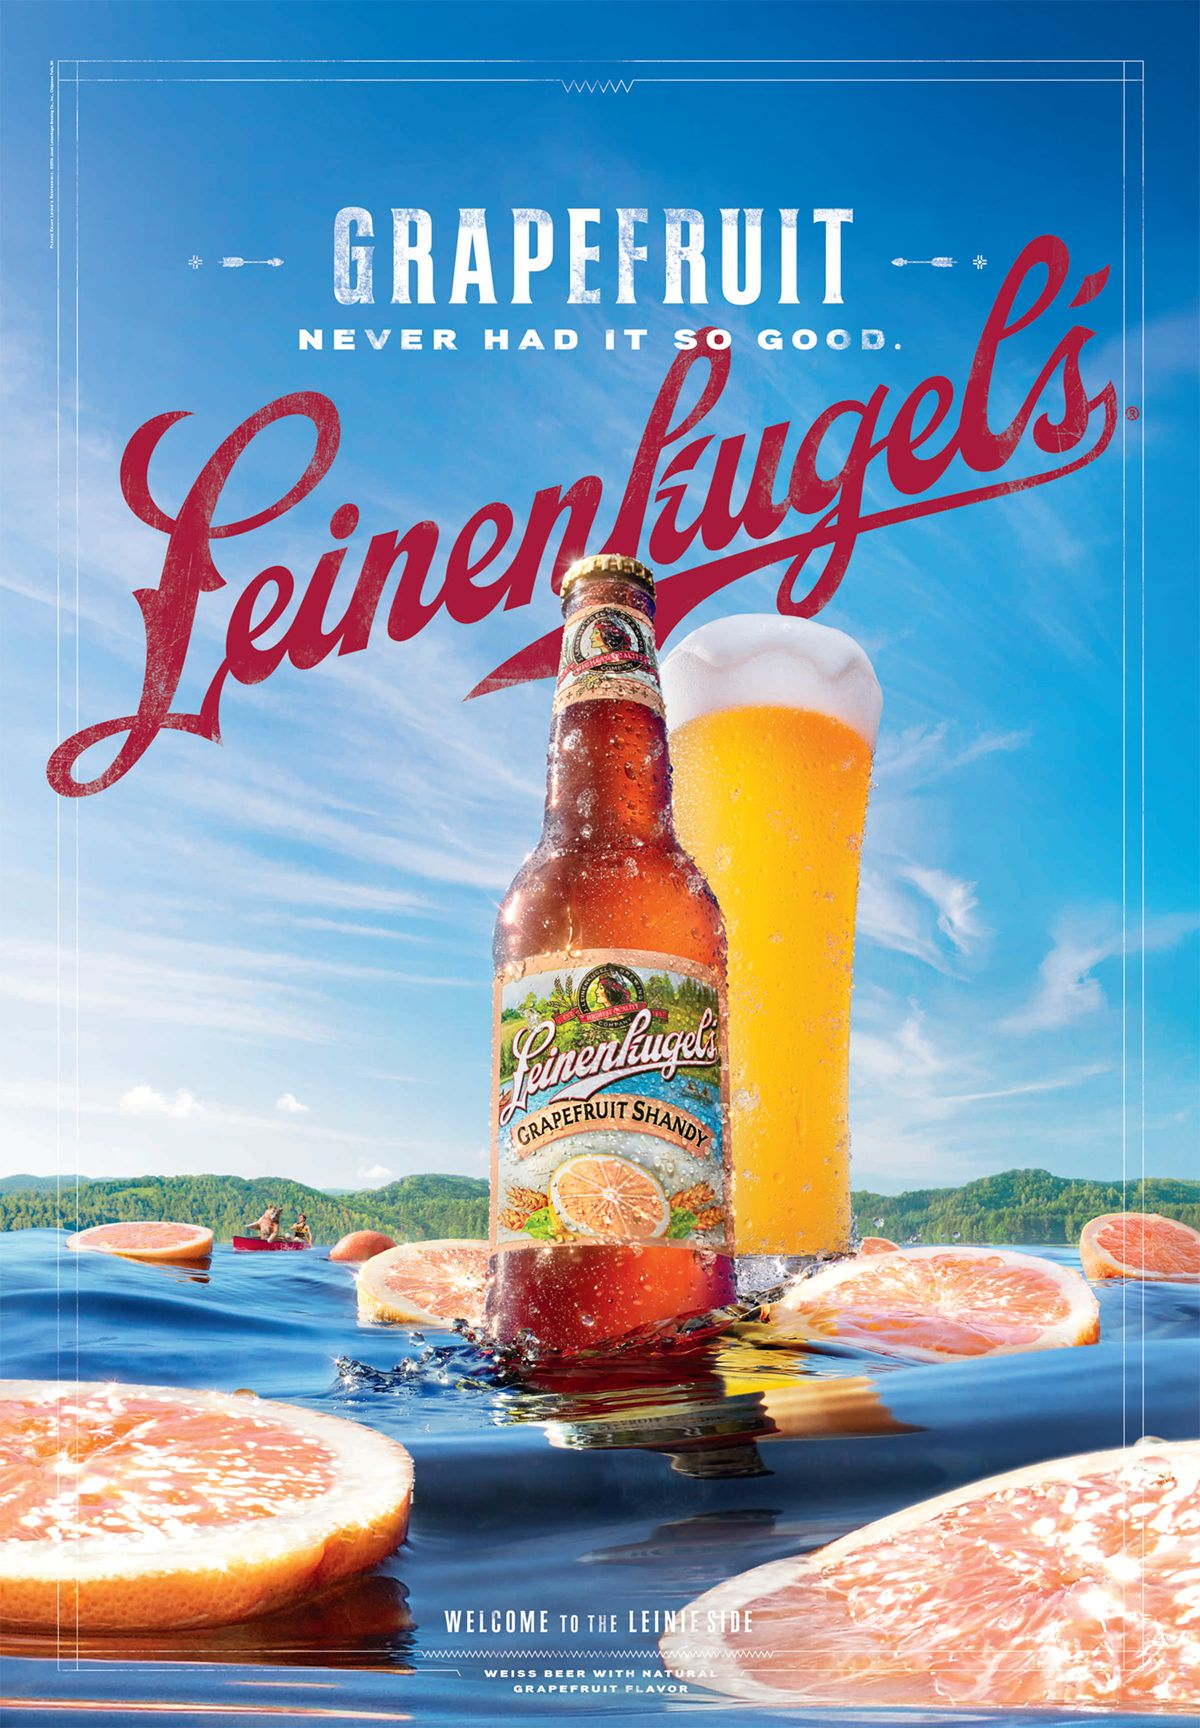 Leinenkugel's on Behance | Beer poster design, Creative ...